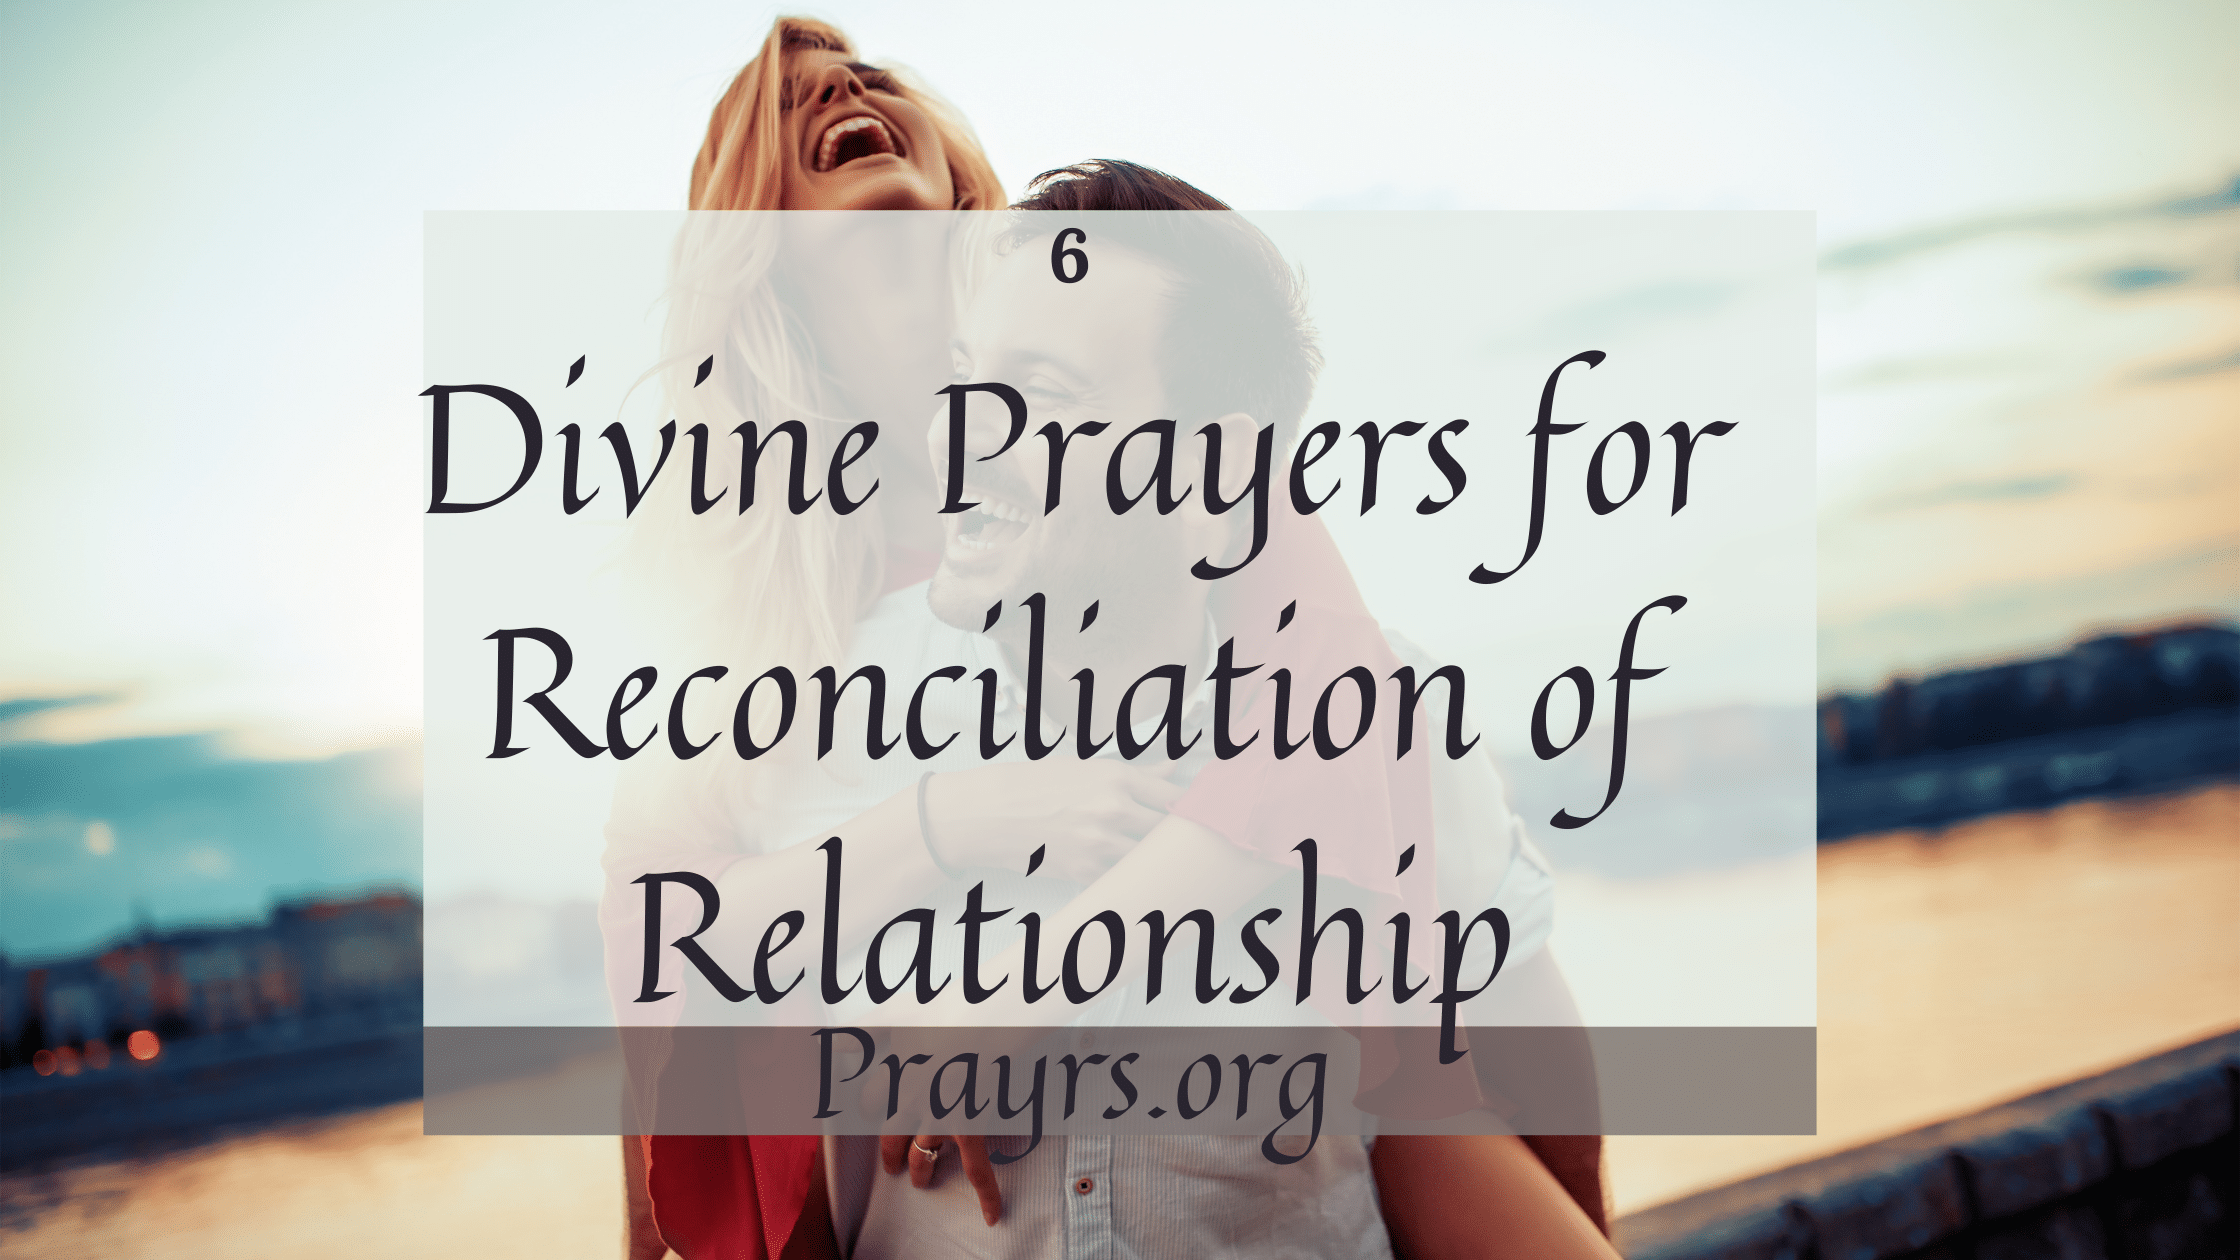 Prayers for Reconciliation of Relationship